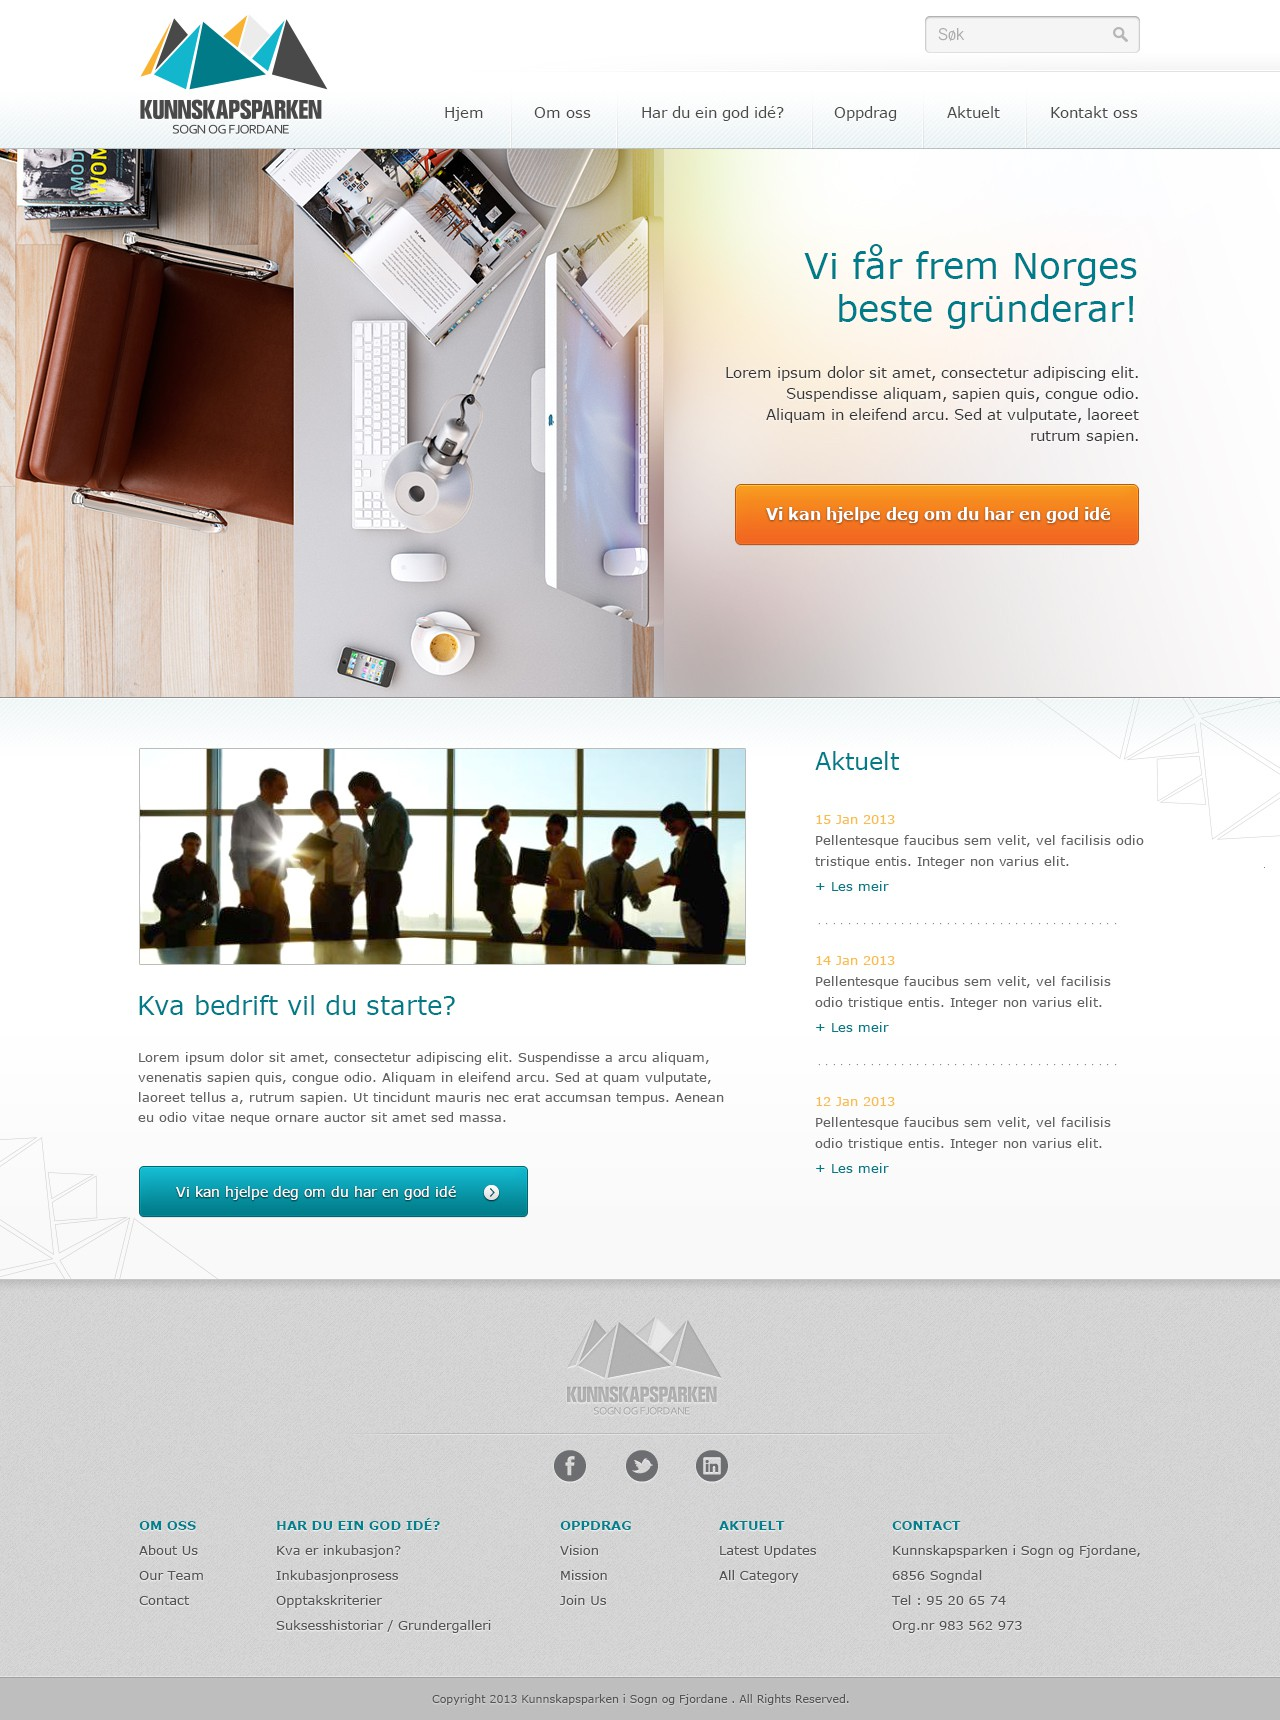 Responsive webdesign for company helping commercialization of new business ideas in Norway